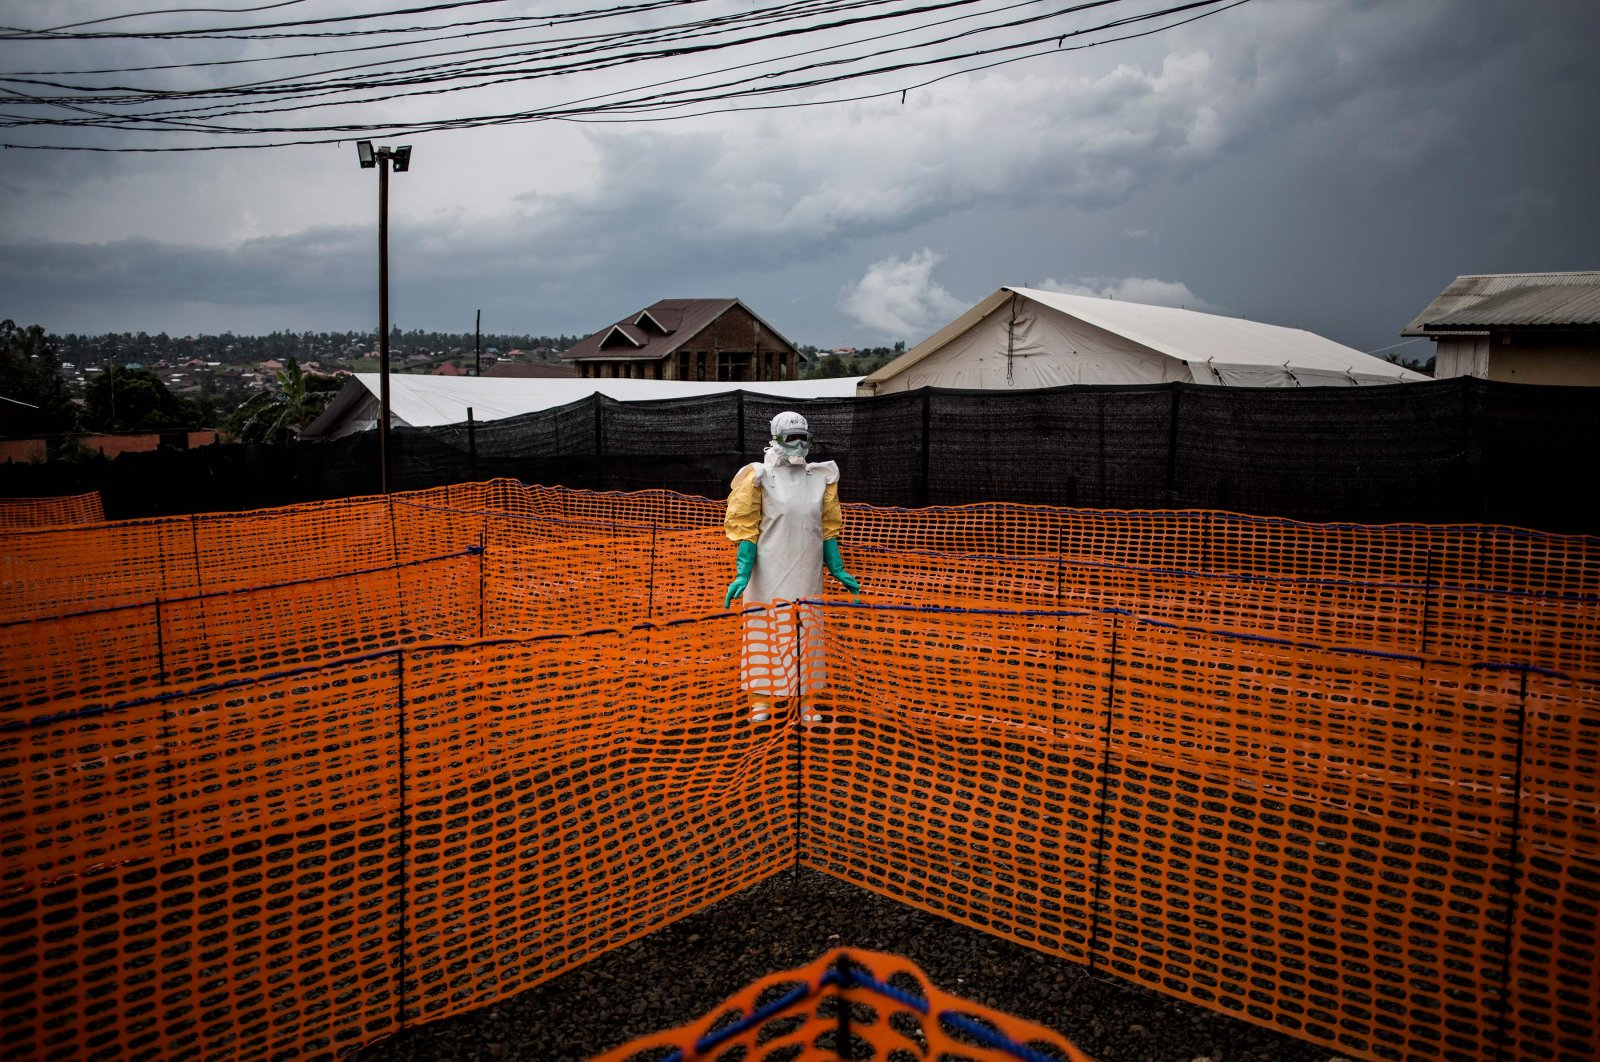 A health worker waits to handle a new unconfirmed Ebola patient at a newly built Doctors Without Borders-supported Ebola treatment center, Bunia, Nov. 7, 2018. (AFP Photo)